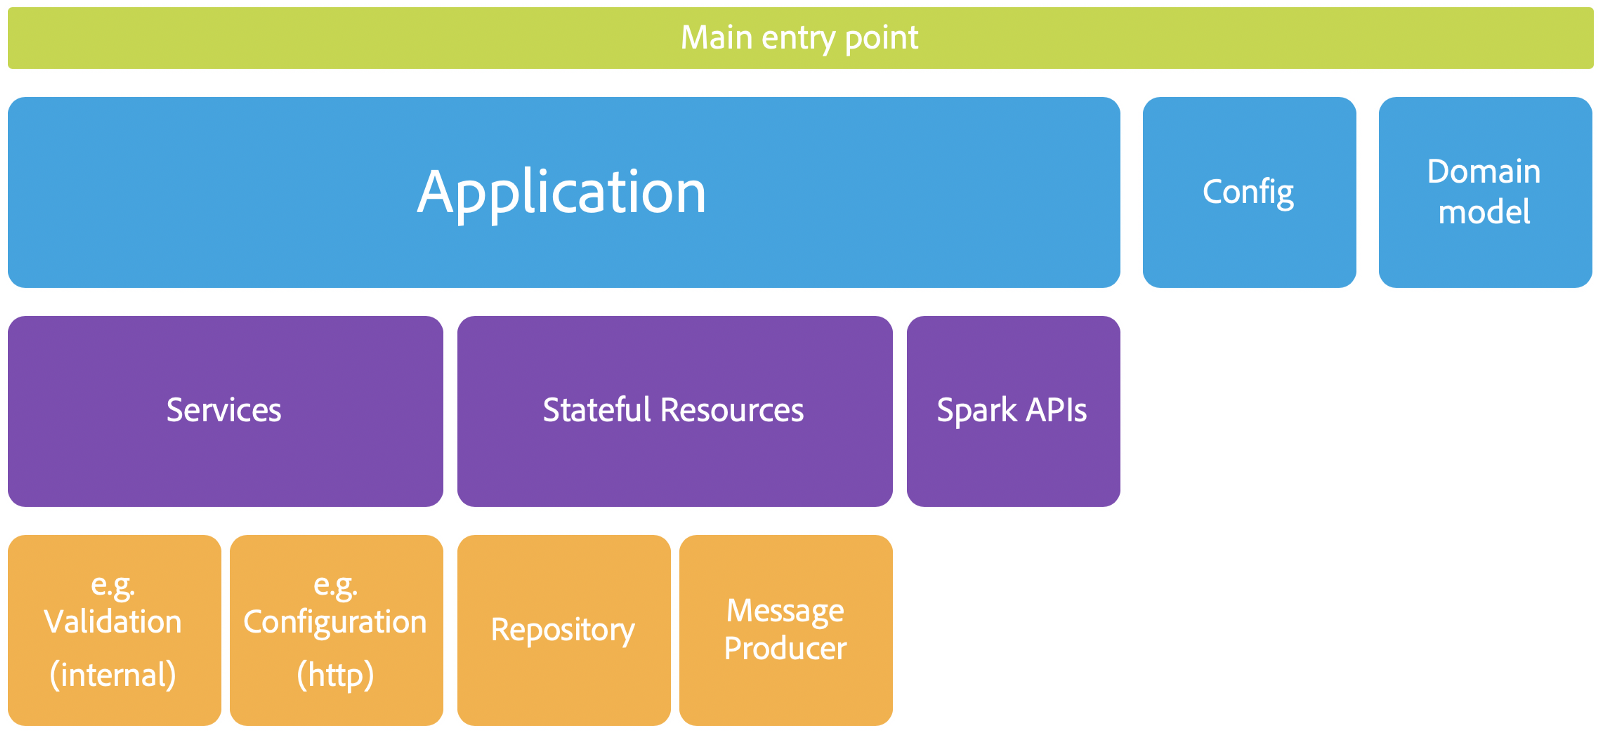 Spark On Scala Adobe Analytics Reference Architecture Block Diagram In Here Is A Simple With The Various Components That Make Up Our